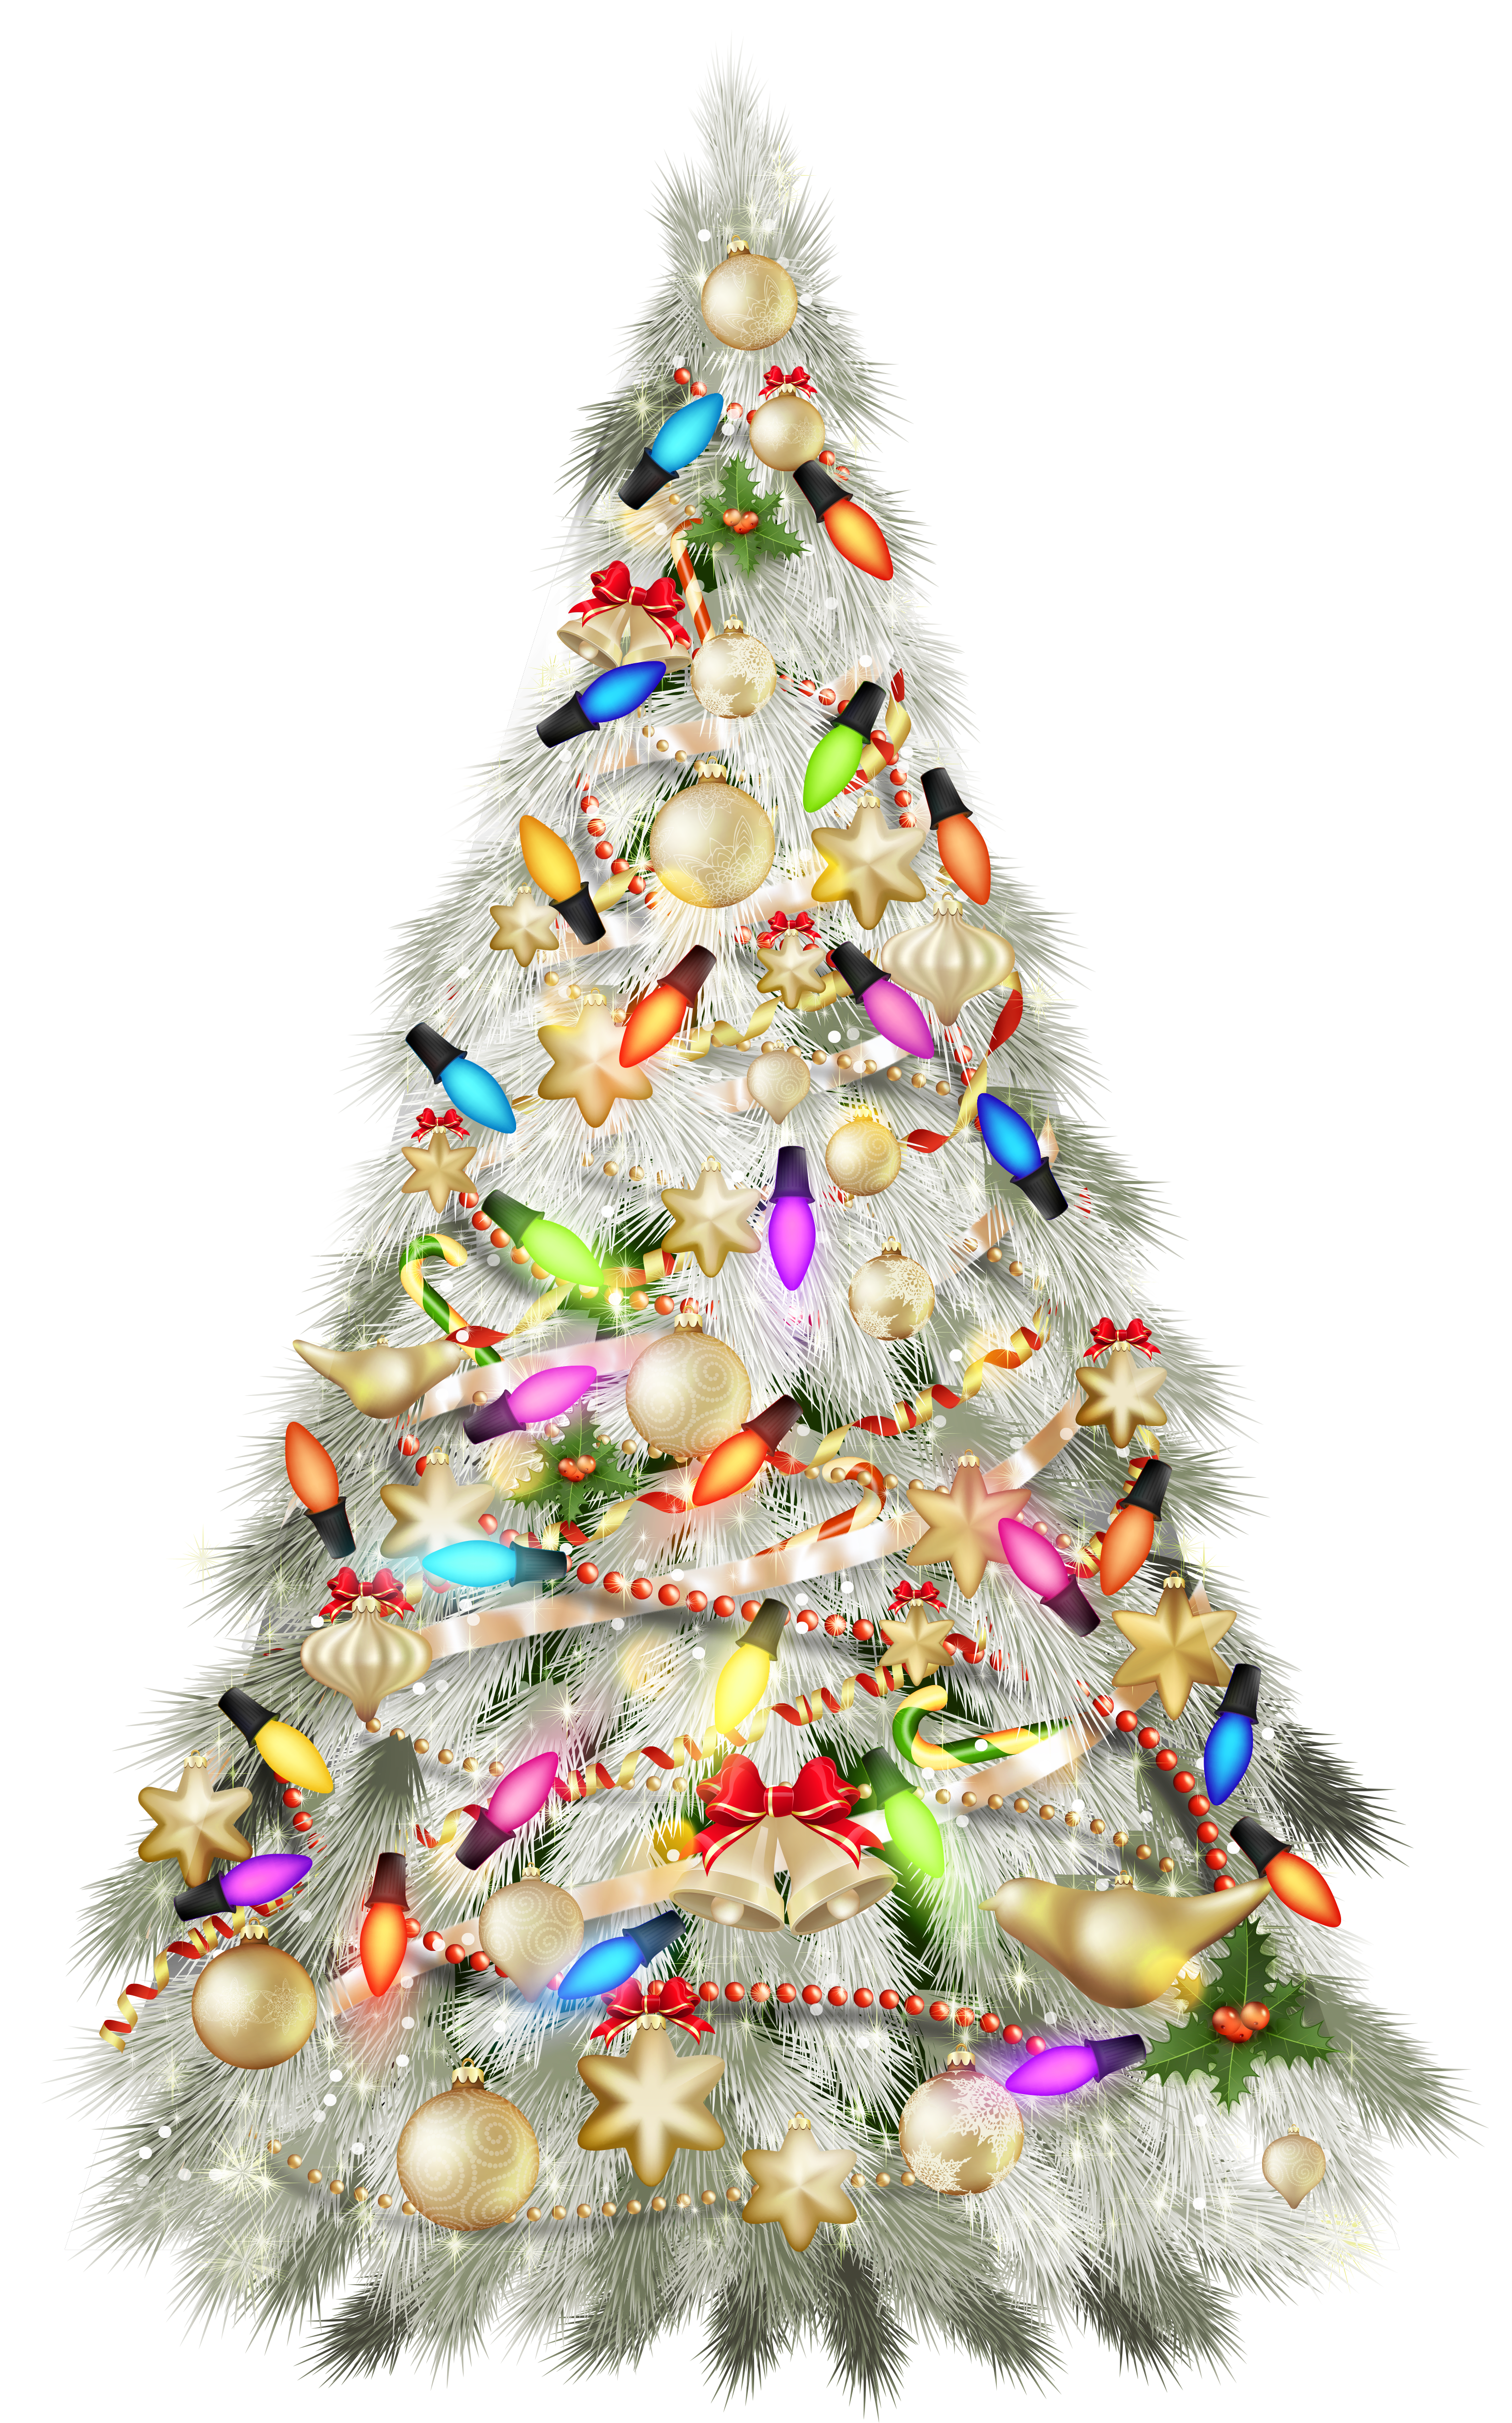 Transparent silver deco. Fireplace clipart christmas tree fireplace